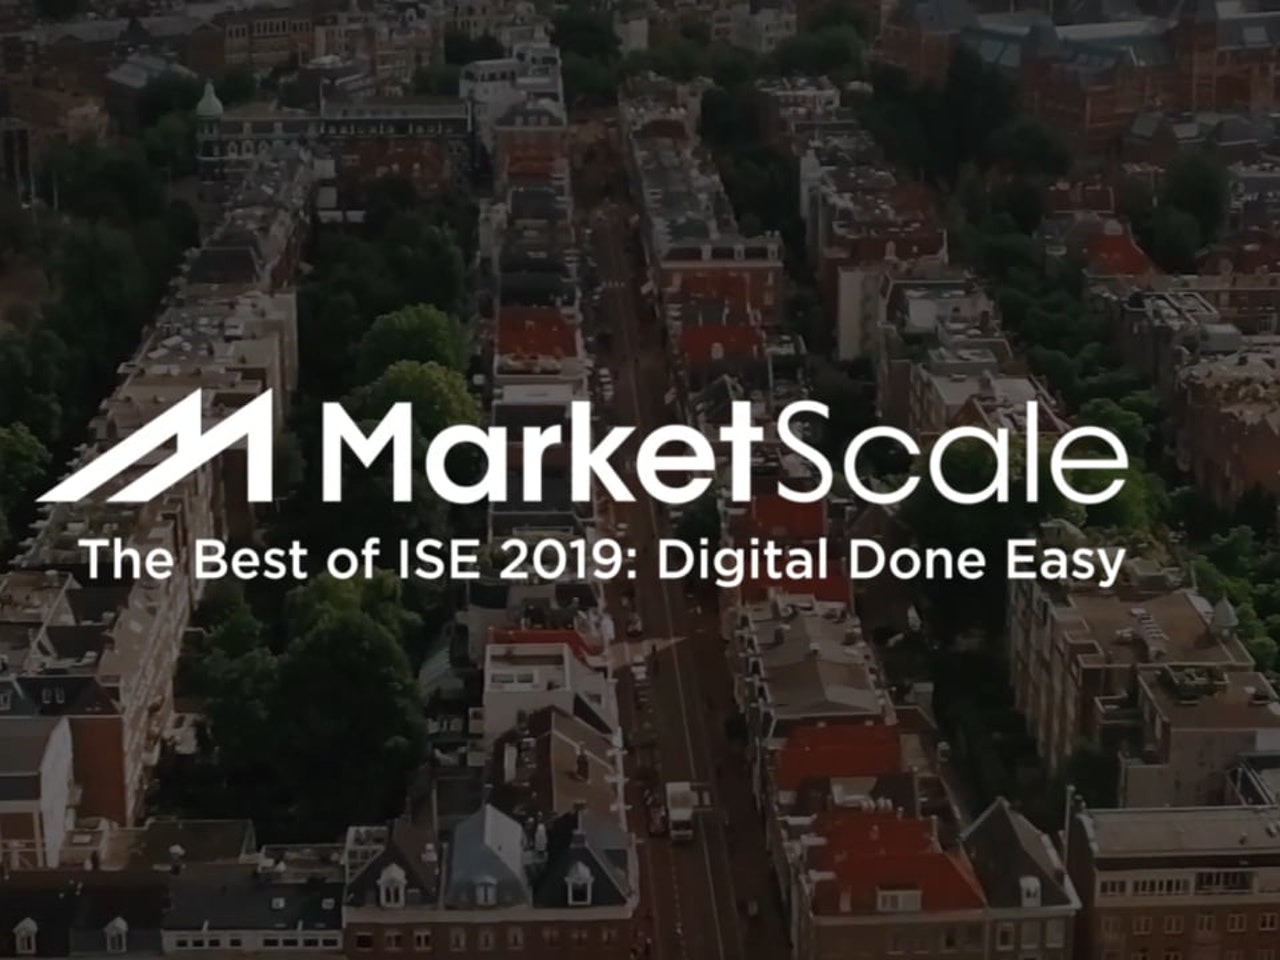 The Best of ISE 2019: Digital Done Easy